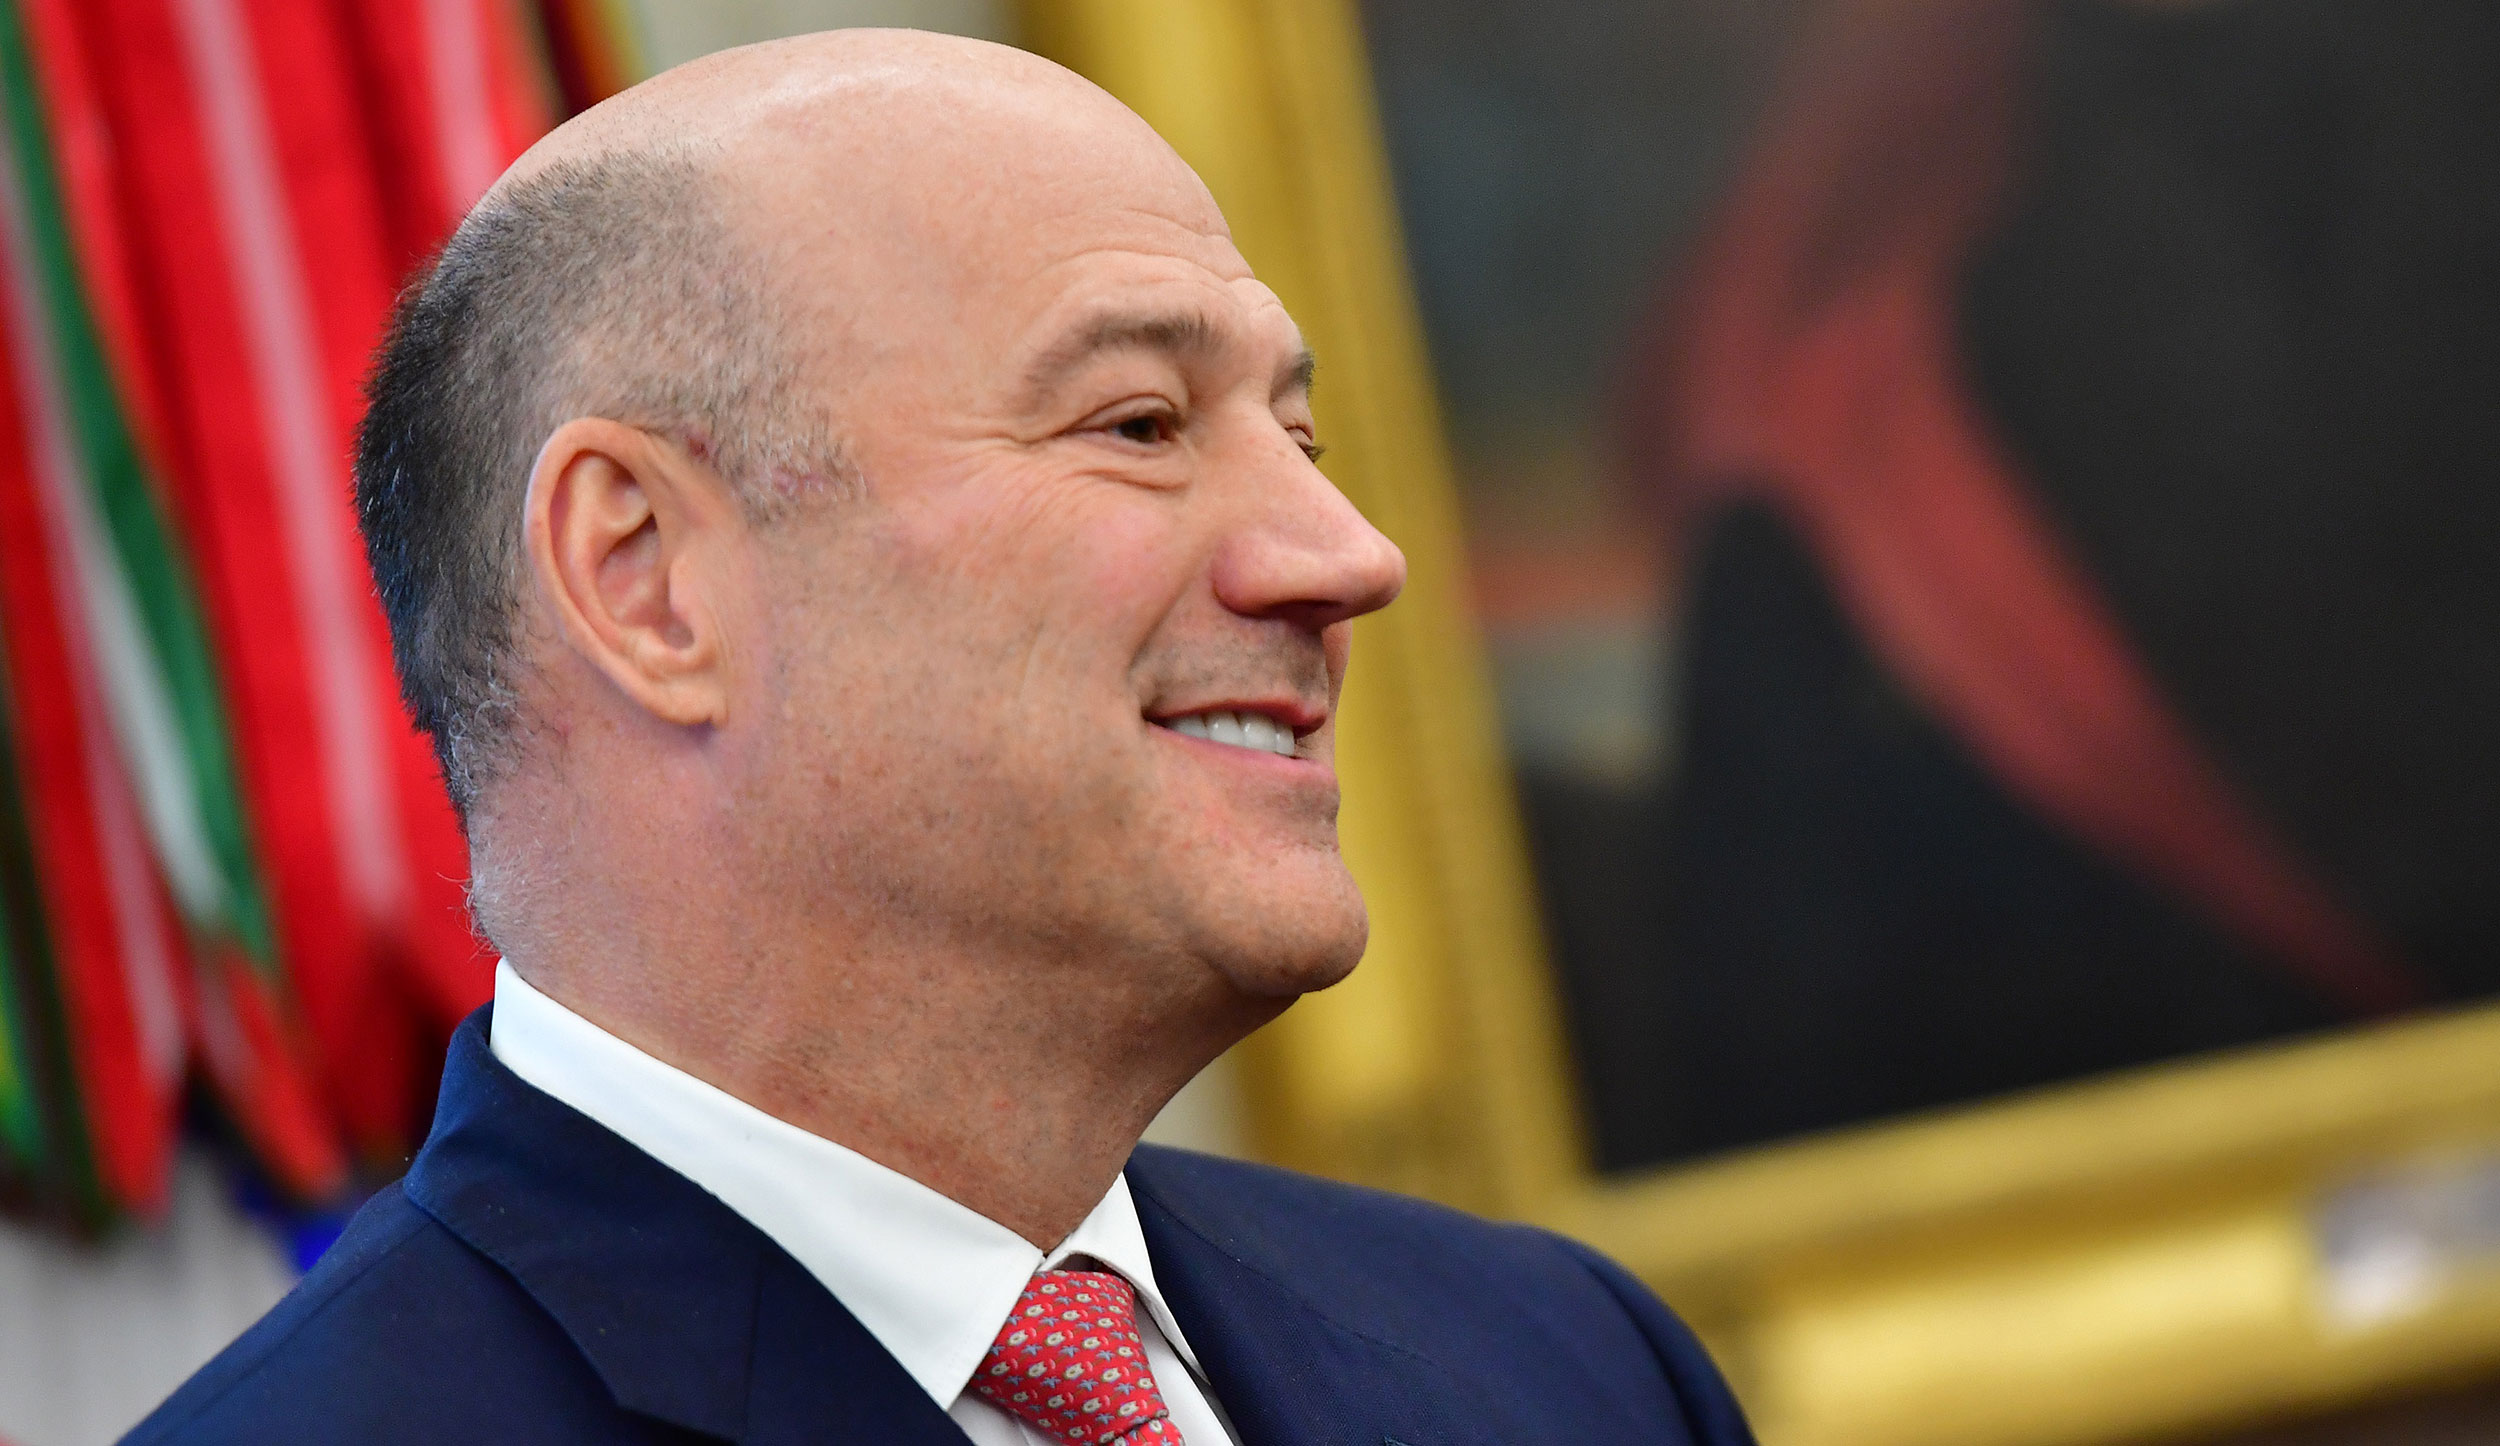 Gary Cohn attends a meeting at the White House in Washington, DC, in 2018.